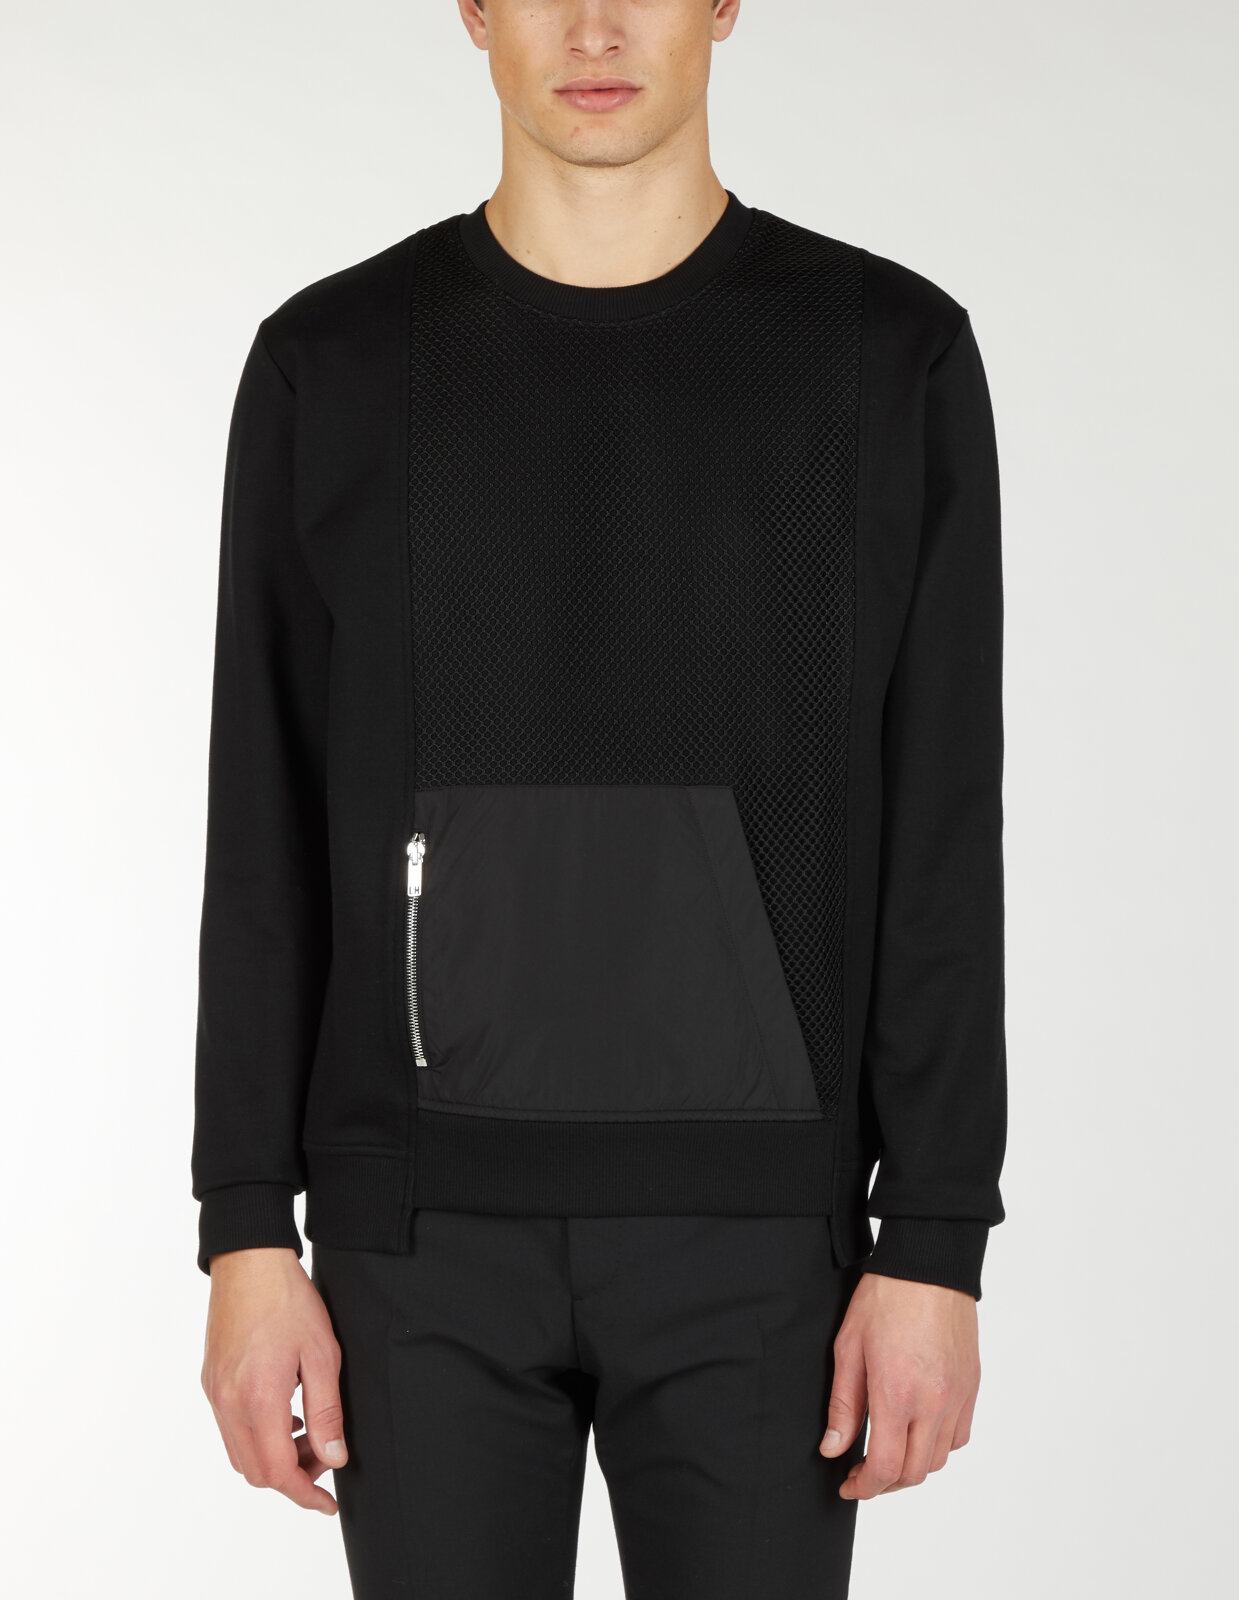 Sweatshirt With Front Pannel Contrast - Les Hommes